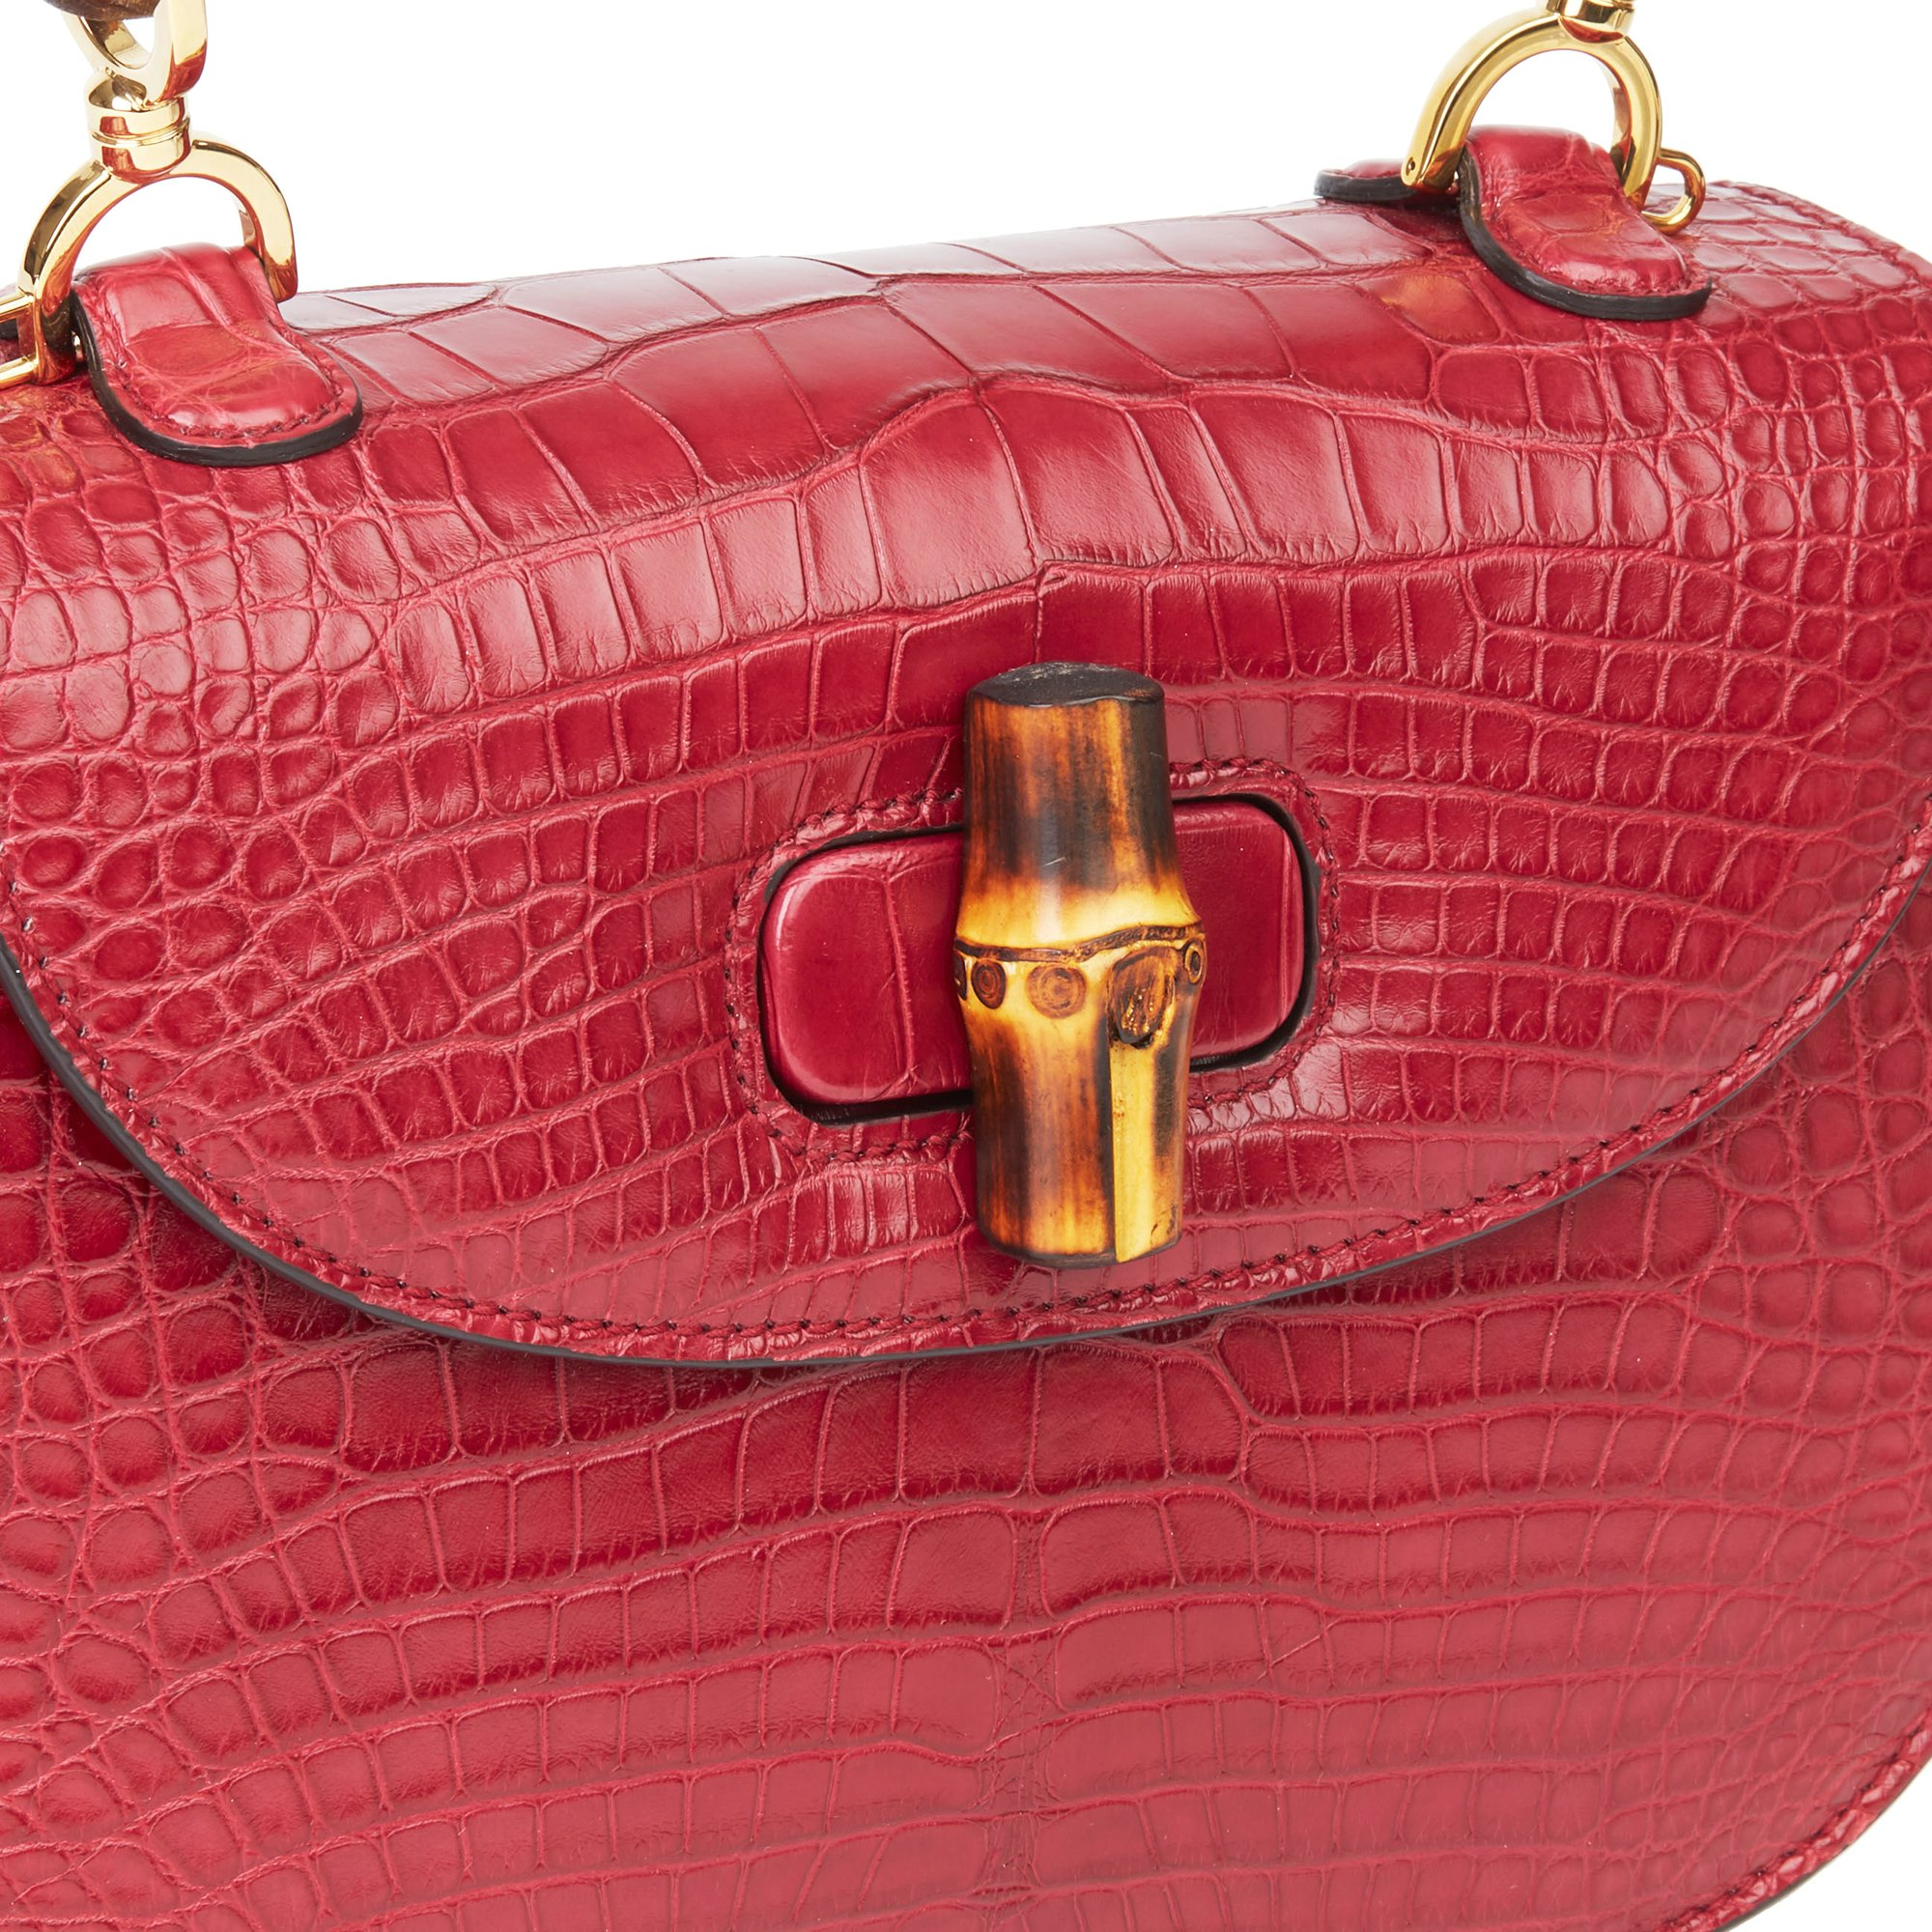 Gucci Burgundy Alligator Leather Bamboo Classic Top Handle